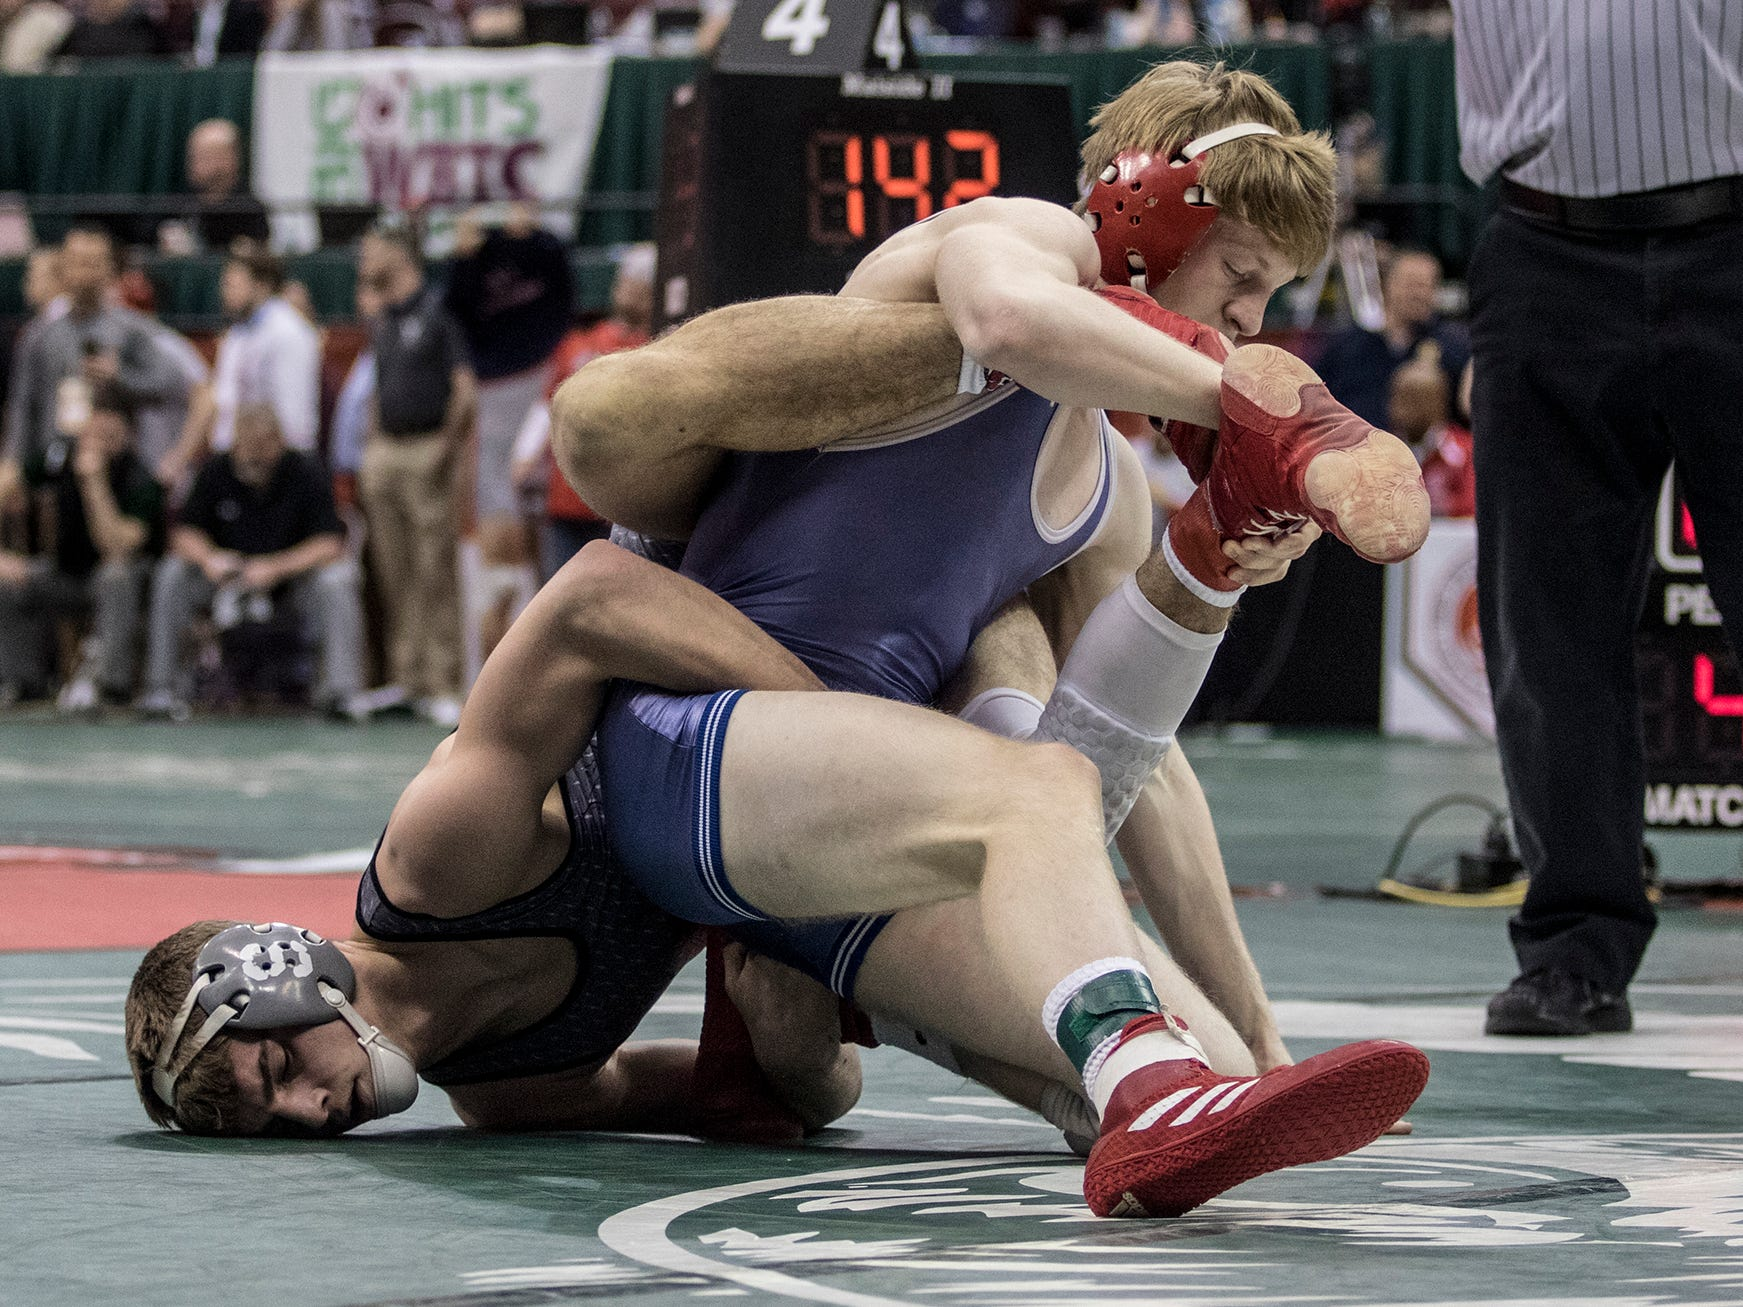 Jordan Barnett of Sheridan, wrestles in the Division II 145 weight class at the state wrestling tournament Saturday.